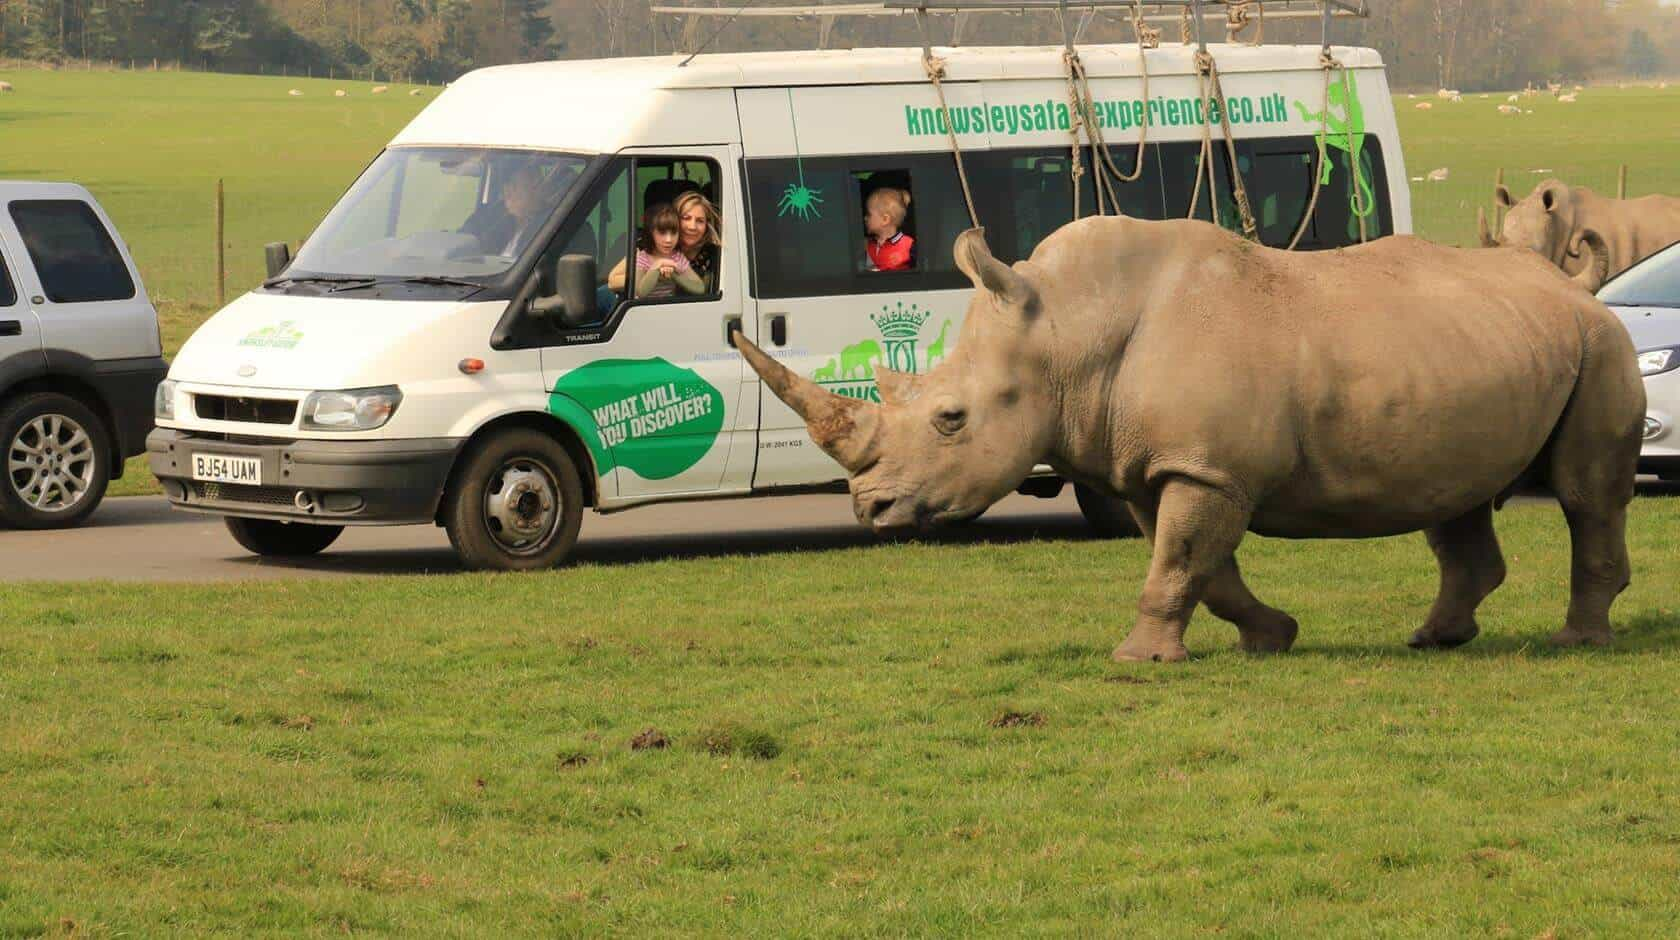 4 Great family attractions in Knowsley